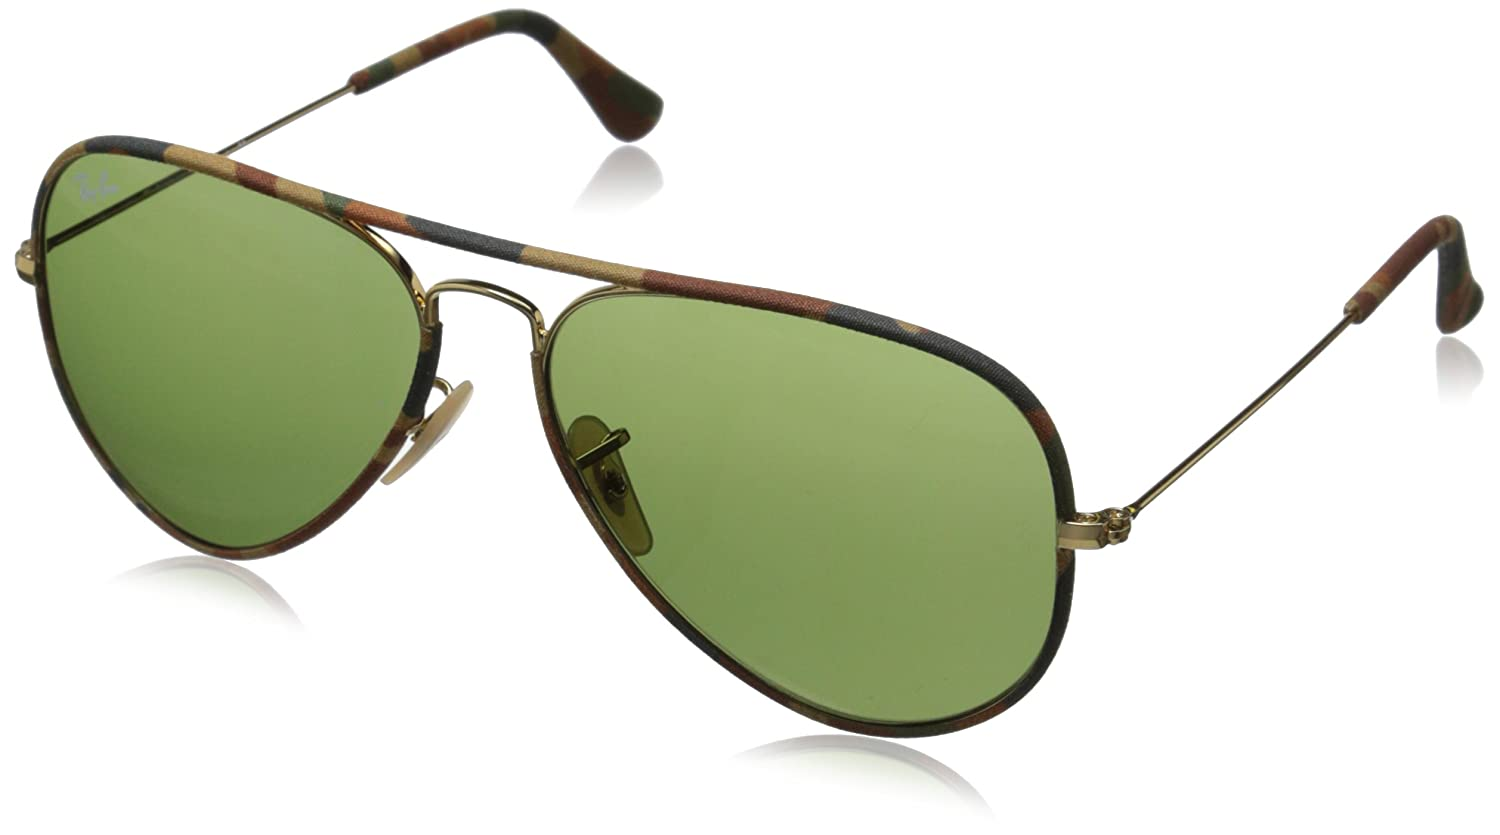 25f9dacb2c Amazon.com  Ray-Ban AVIATOR FULL COLOR - GOLD Frame GREEN Lenses 58mm Non- Polarized  Ray-Ban  Clothing